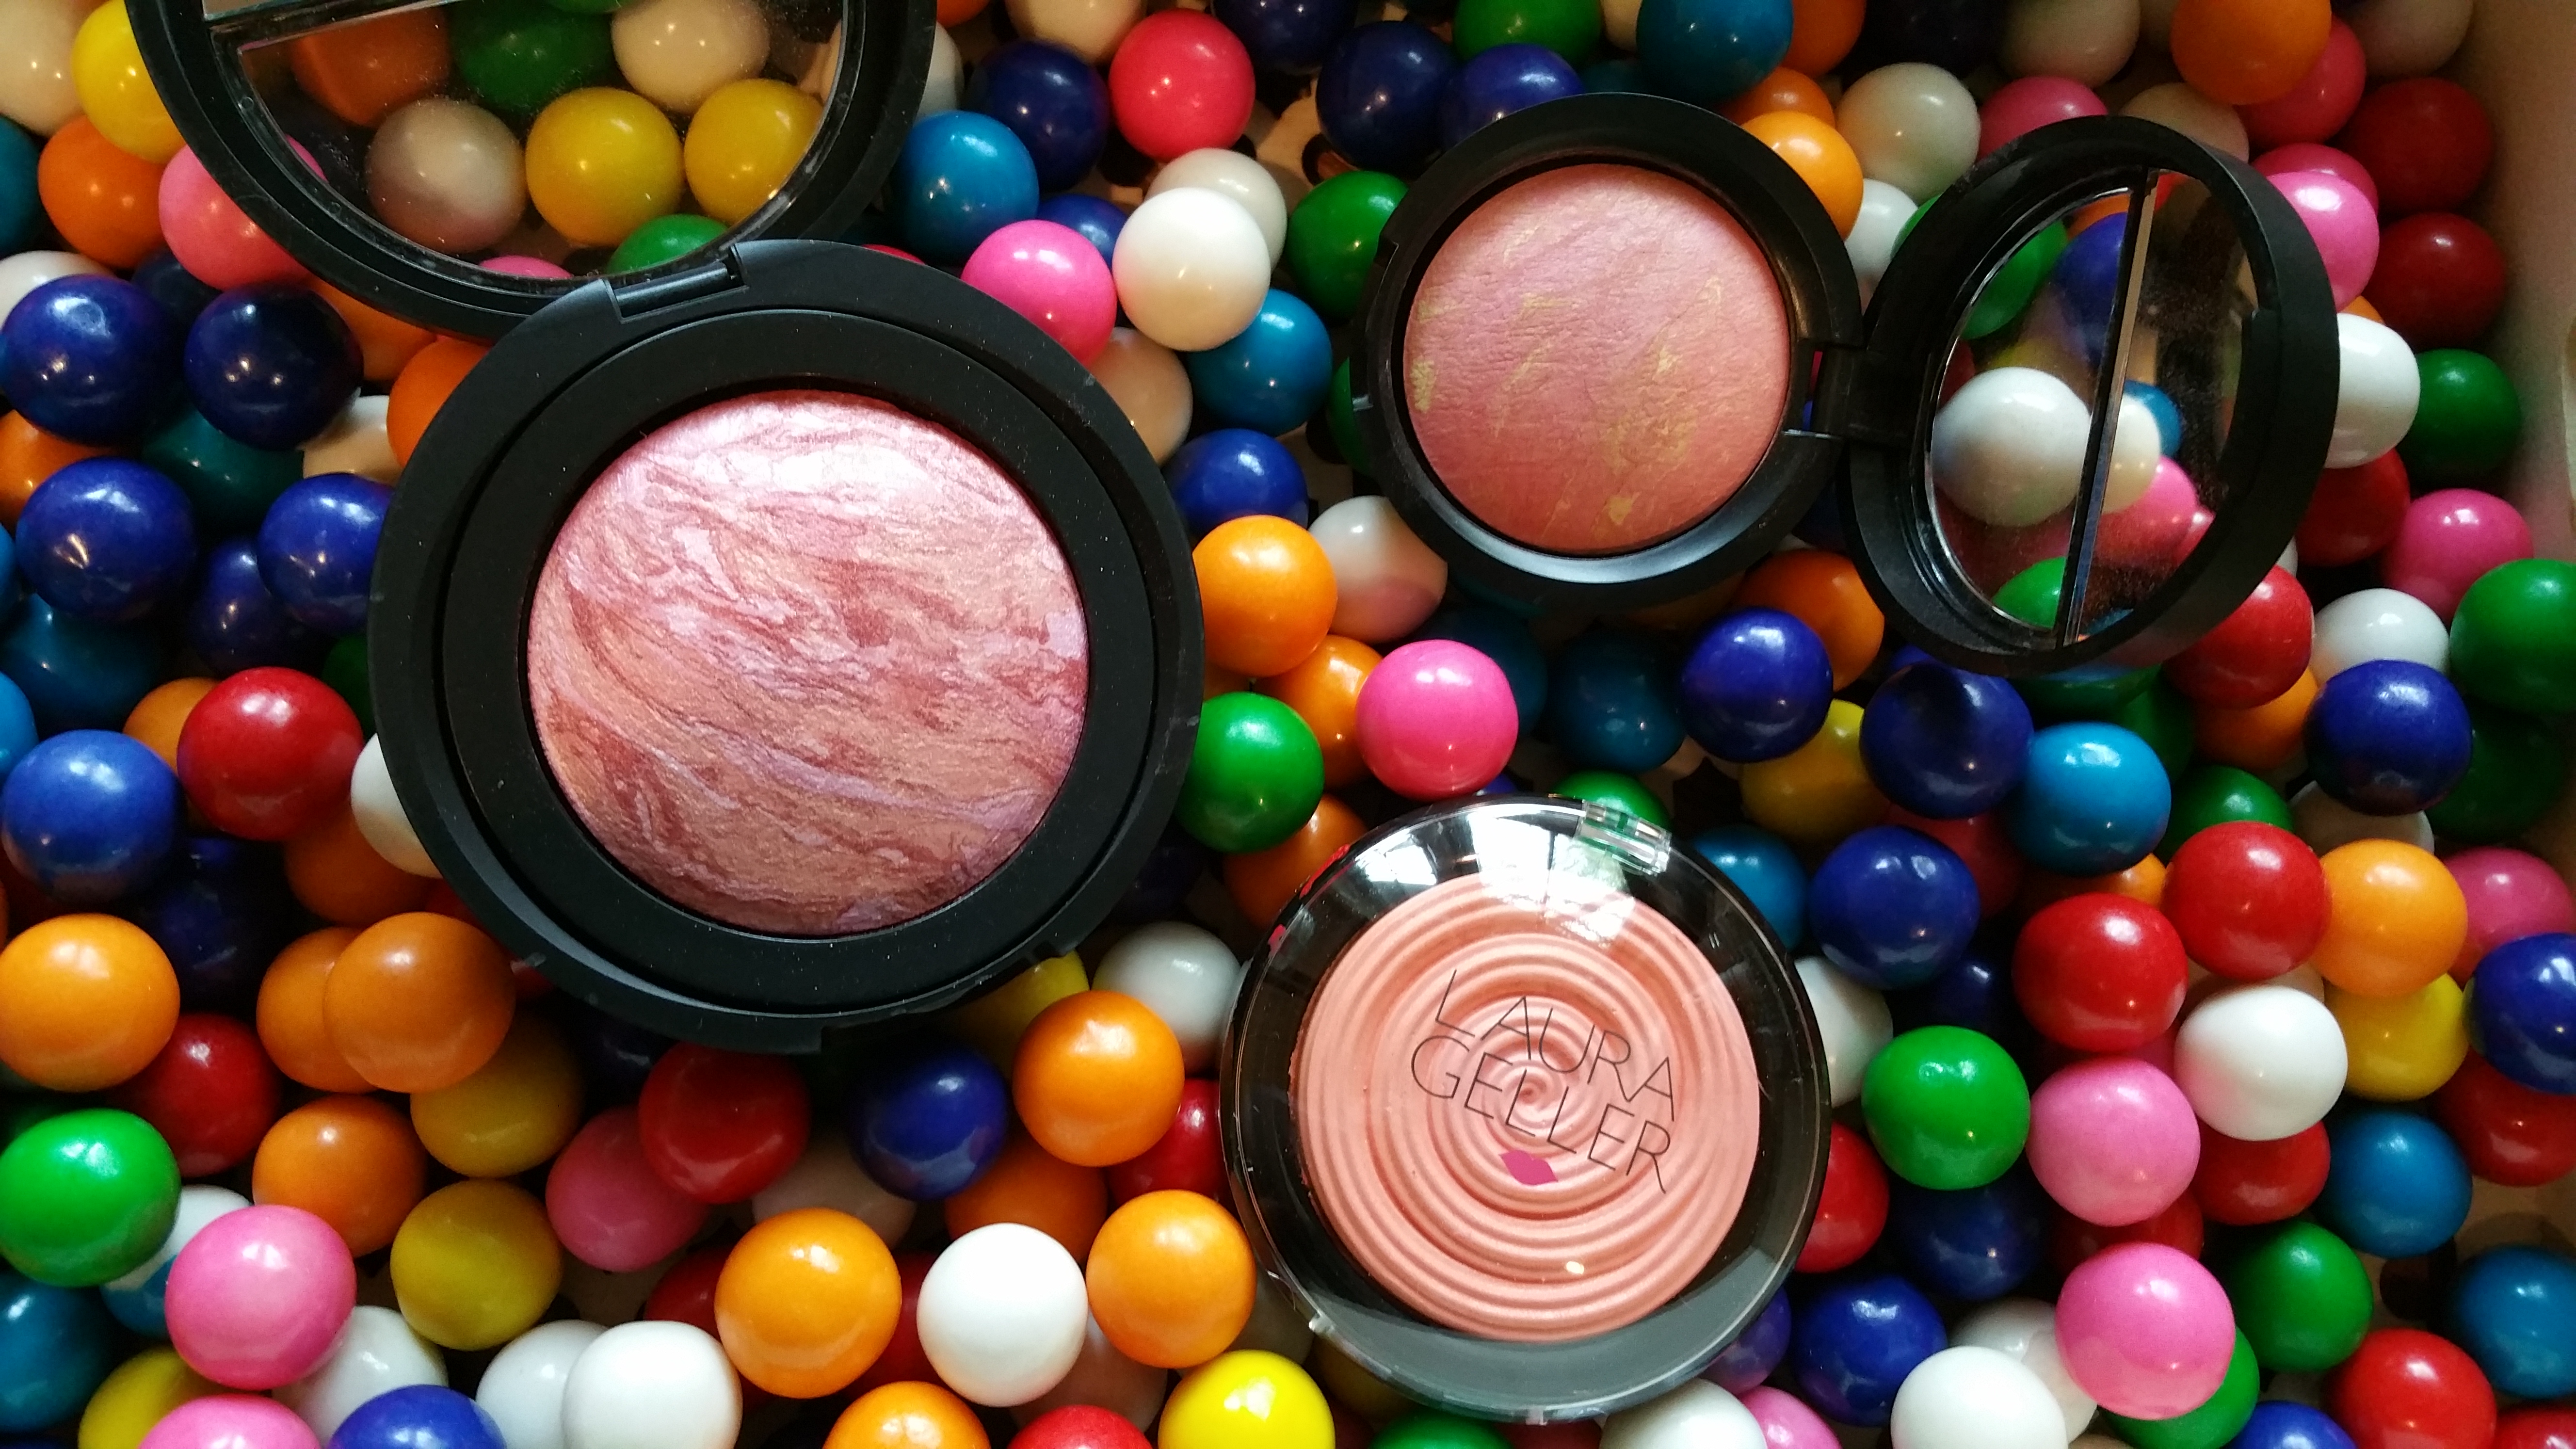 Clockwise from top left: Laura Geller Blush-N-Brighten in Tropic Hues, and Dreamsicle, and Baked Gelato Vivid Swirl Blush in Cantaloupe